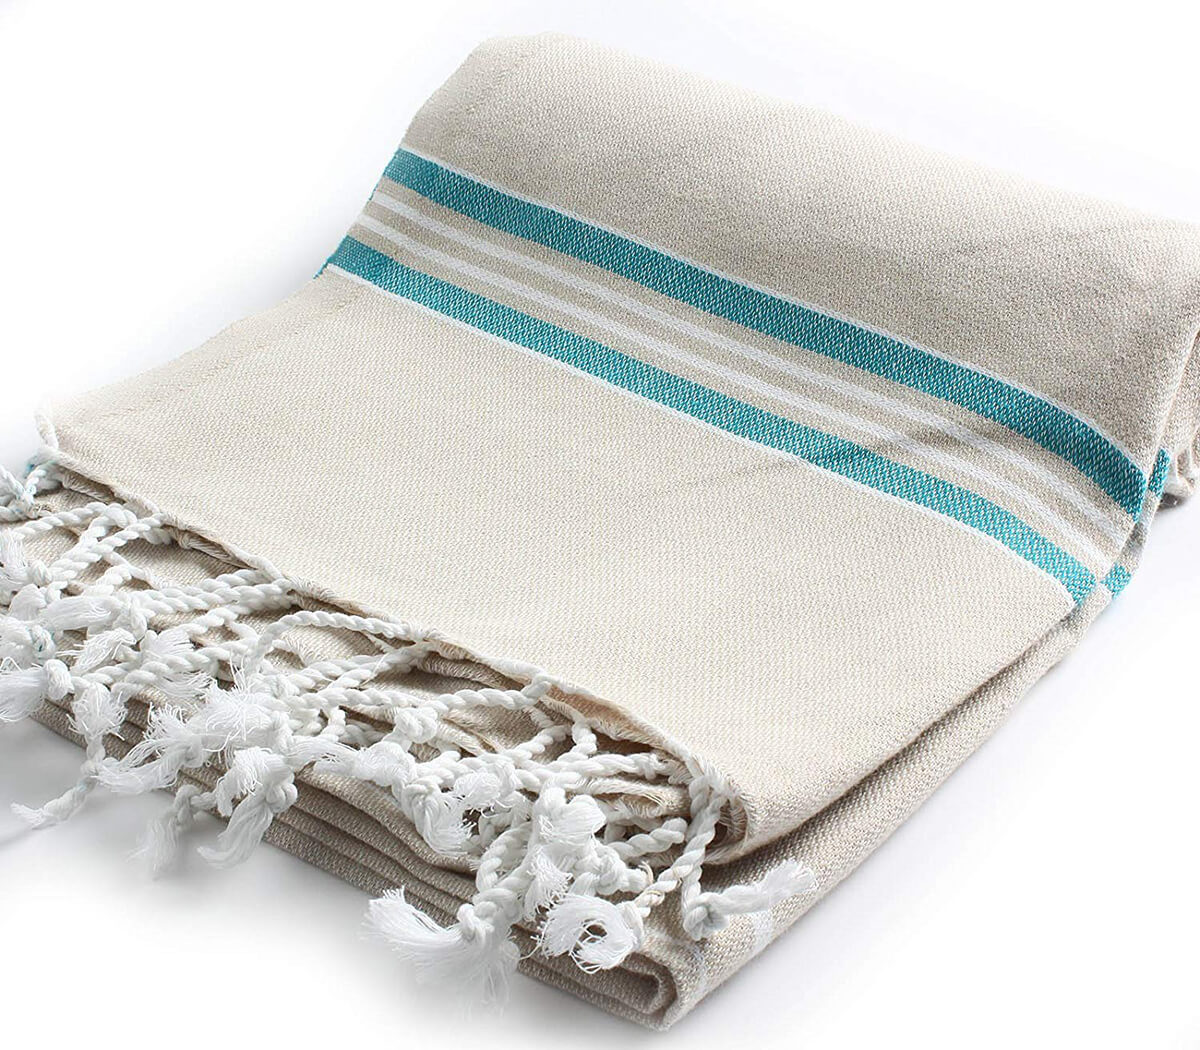 Pestemal Turkish Bath Striped Towels by Cacala